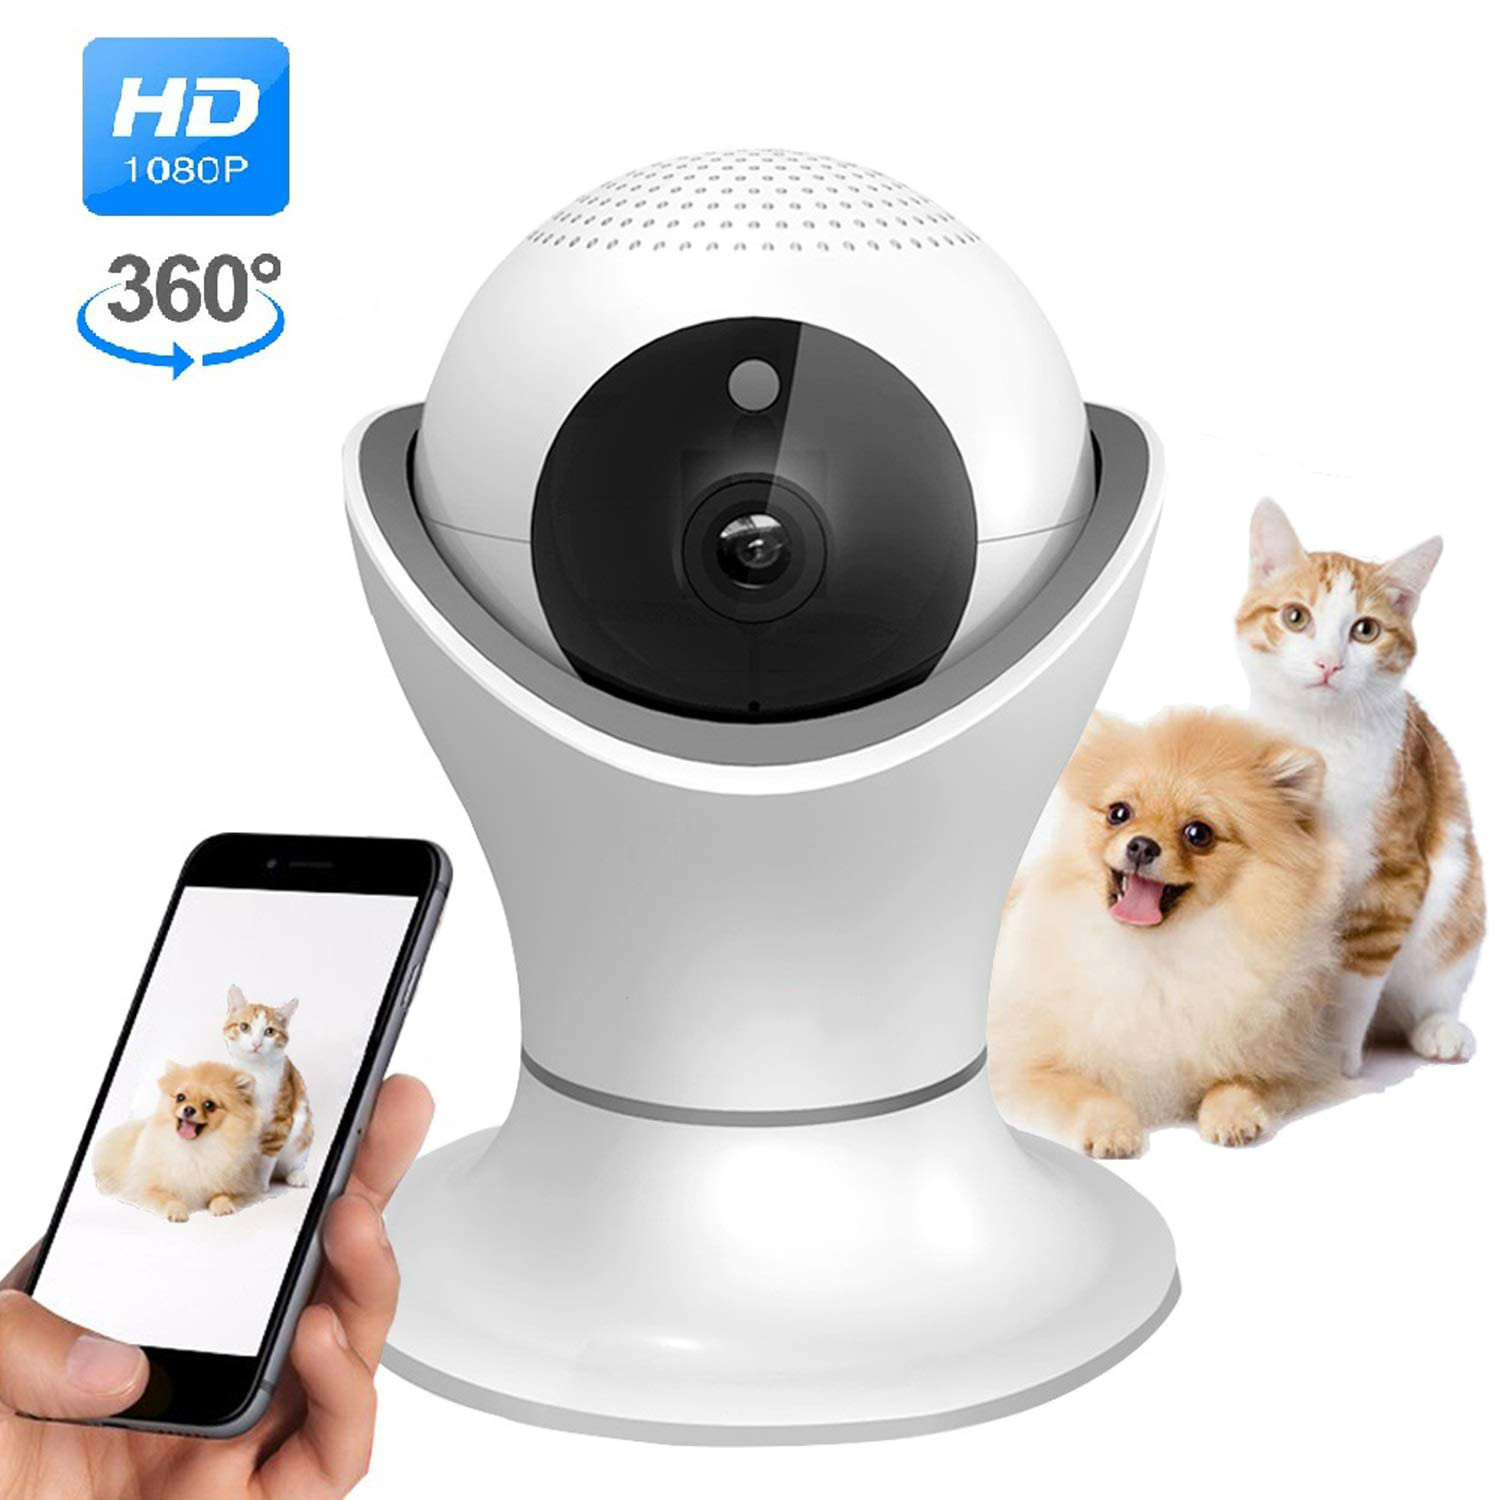 1080P Wifi IP Camera Fisheye 360 Degree CCTV Security Surveillance Camera 2MP Indoor Night Vision CCTV Camera Baby Monitor1080P Wifi IP Camera Fisheye 360 Degree CCTV Security Surveillance Camera 2MP Indoor Night Vision CCTV Camera Baby Monitor